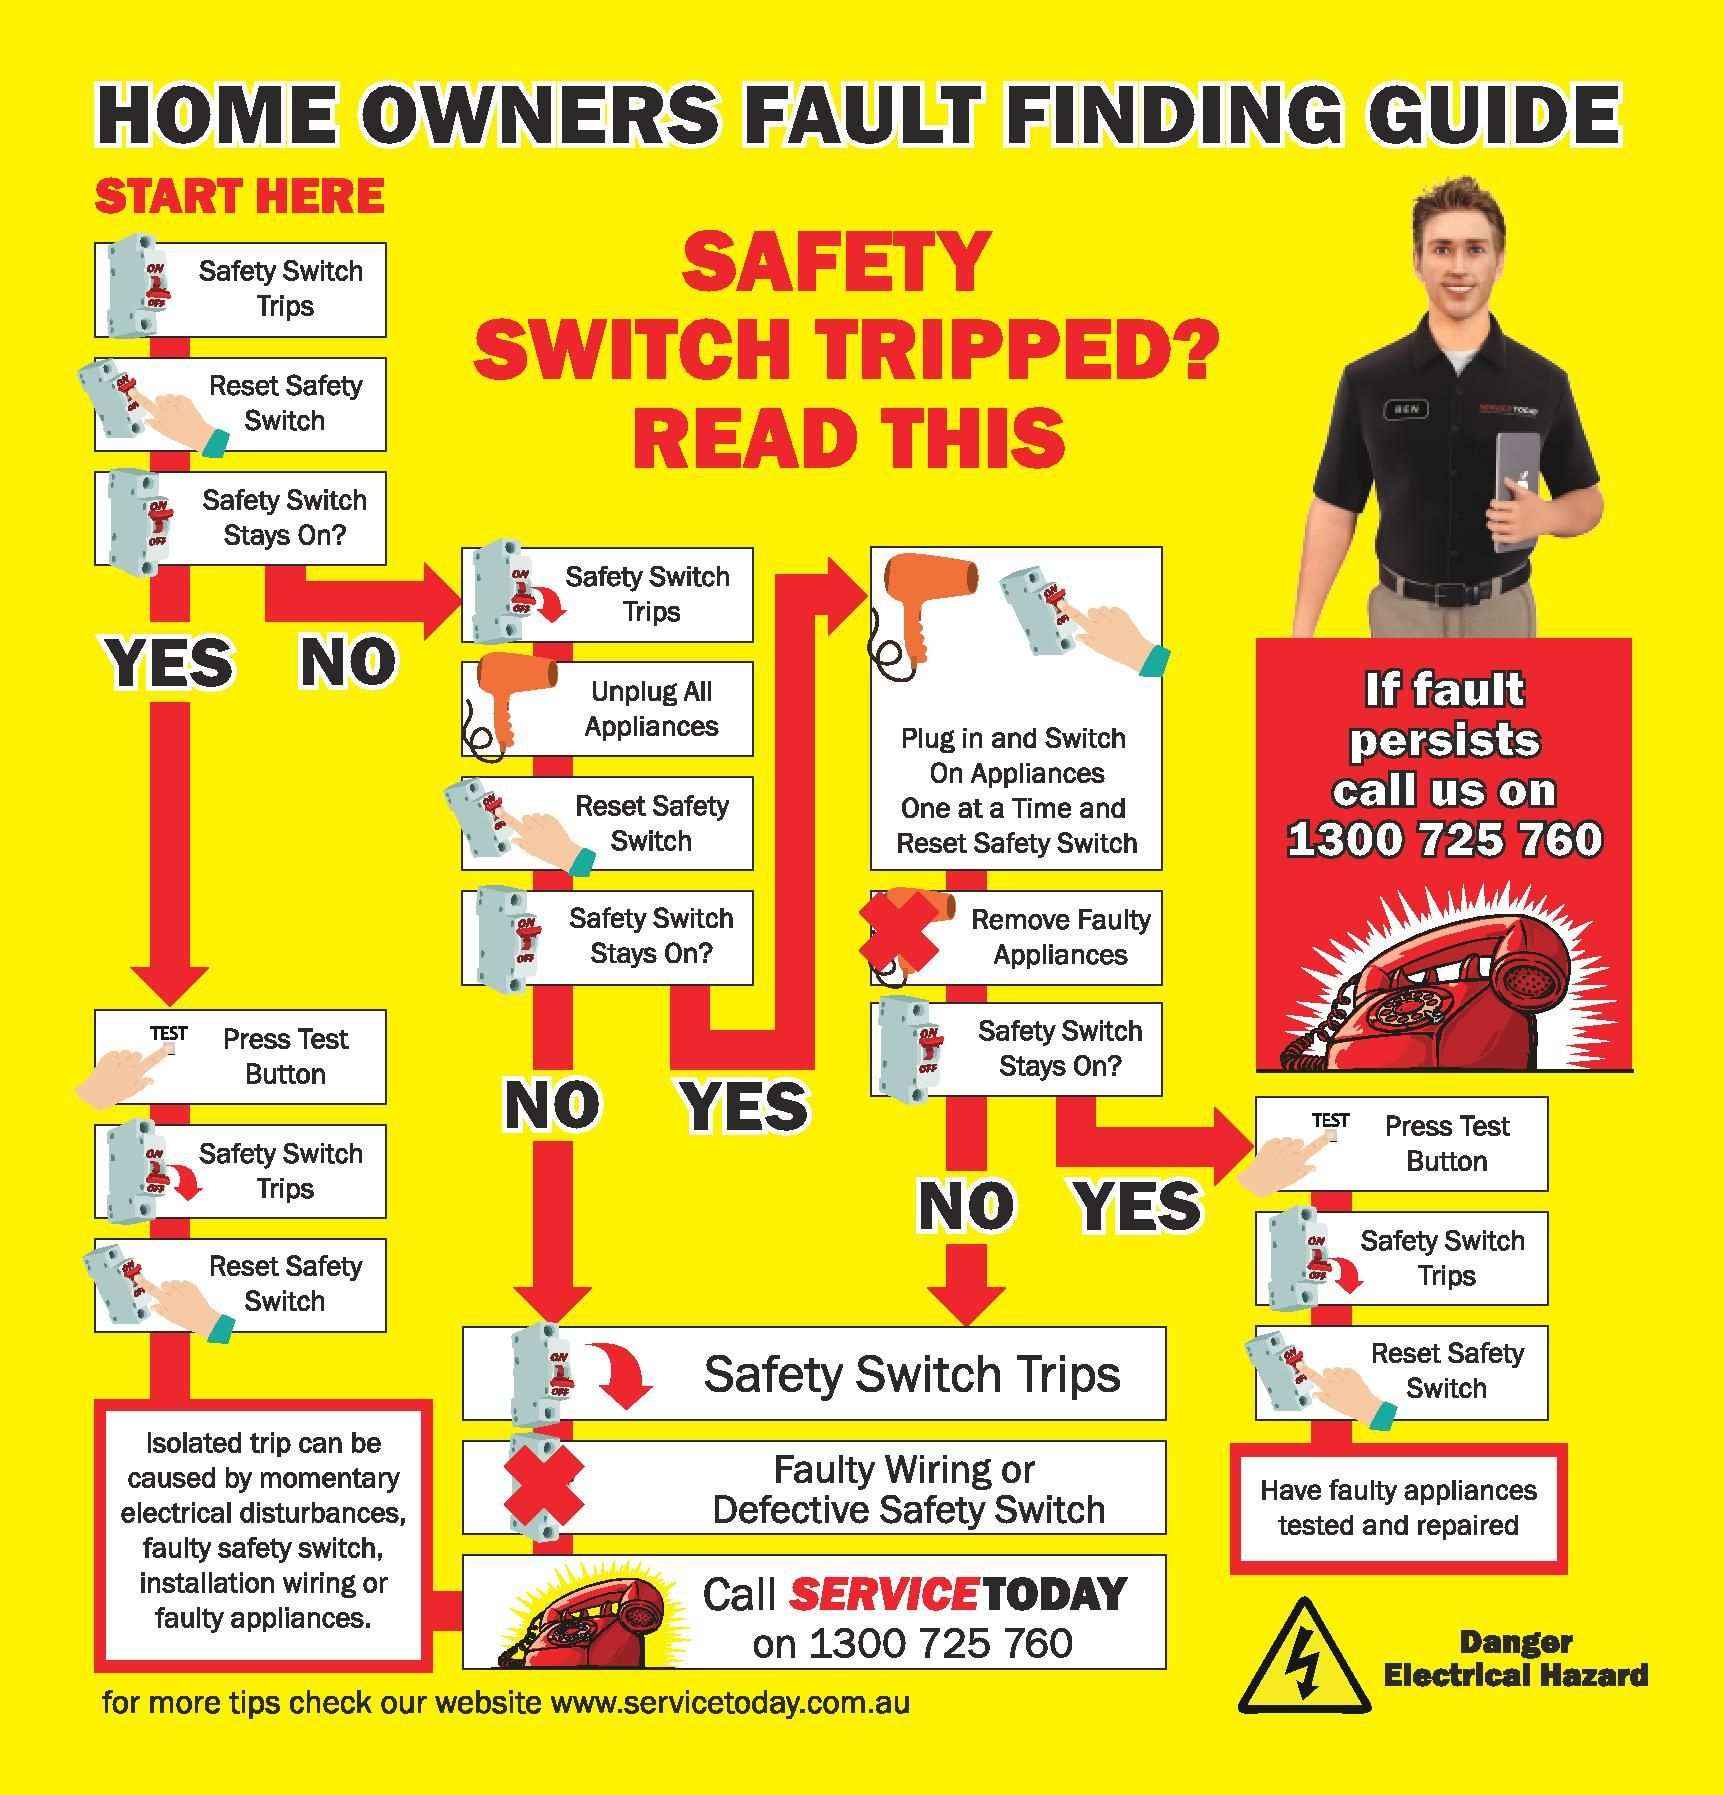 Home Owners Fault finding Guide Safety switch